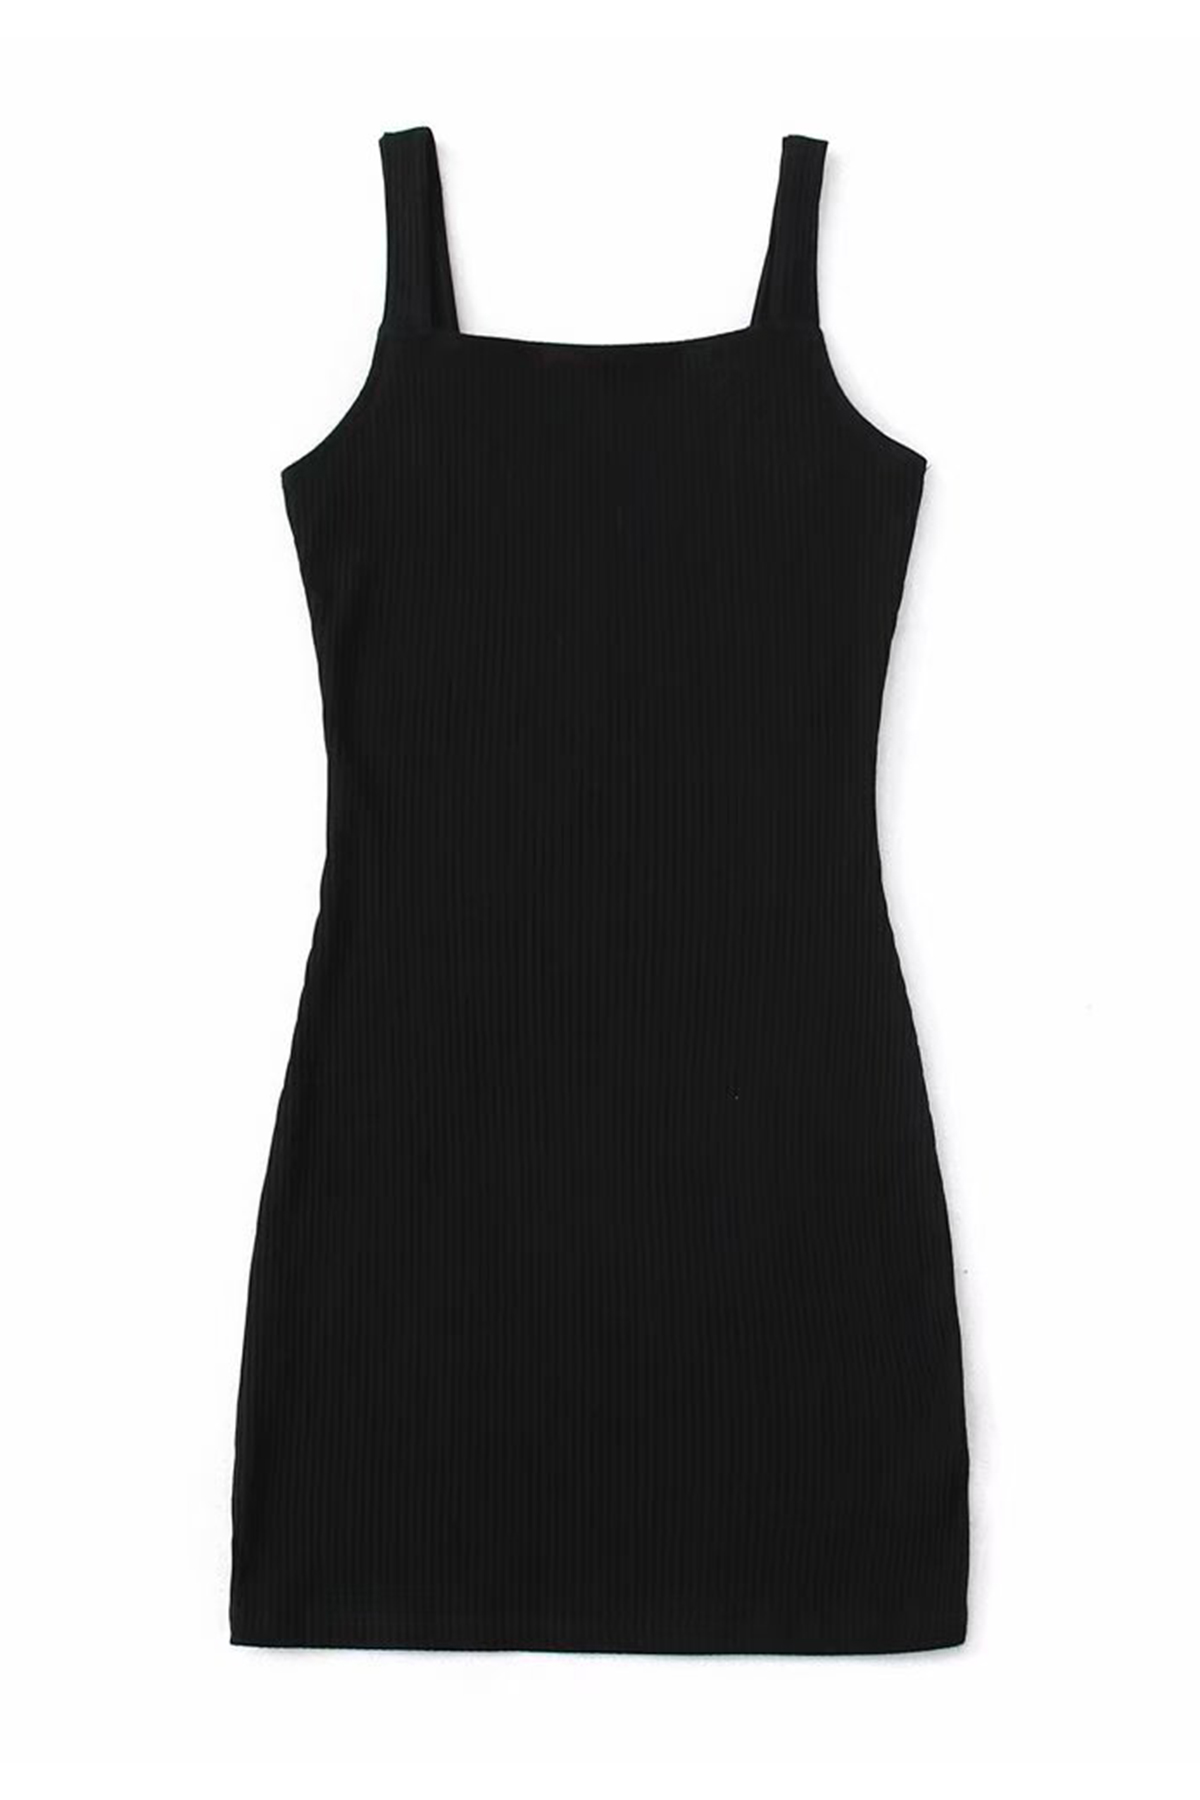 THE MOODSS Chester Mini Dress-1